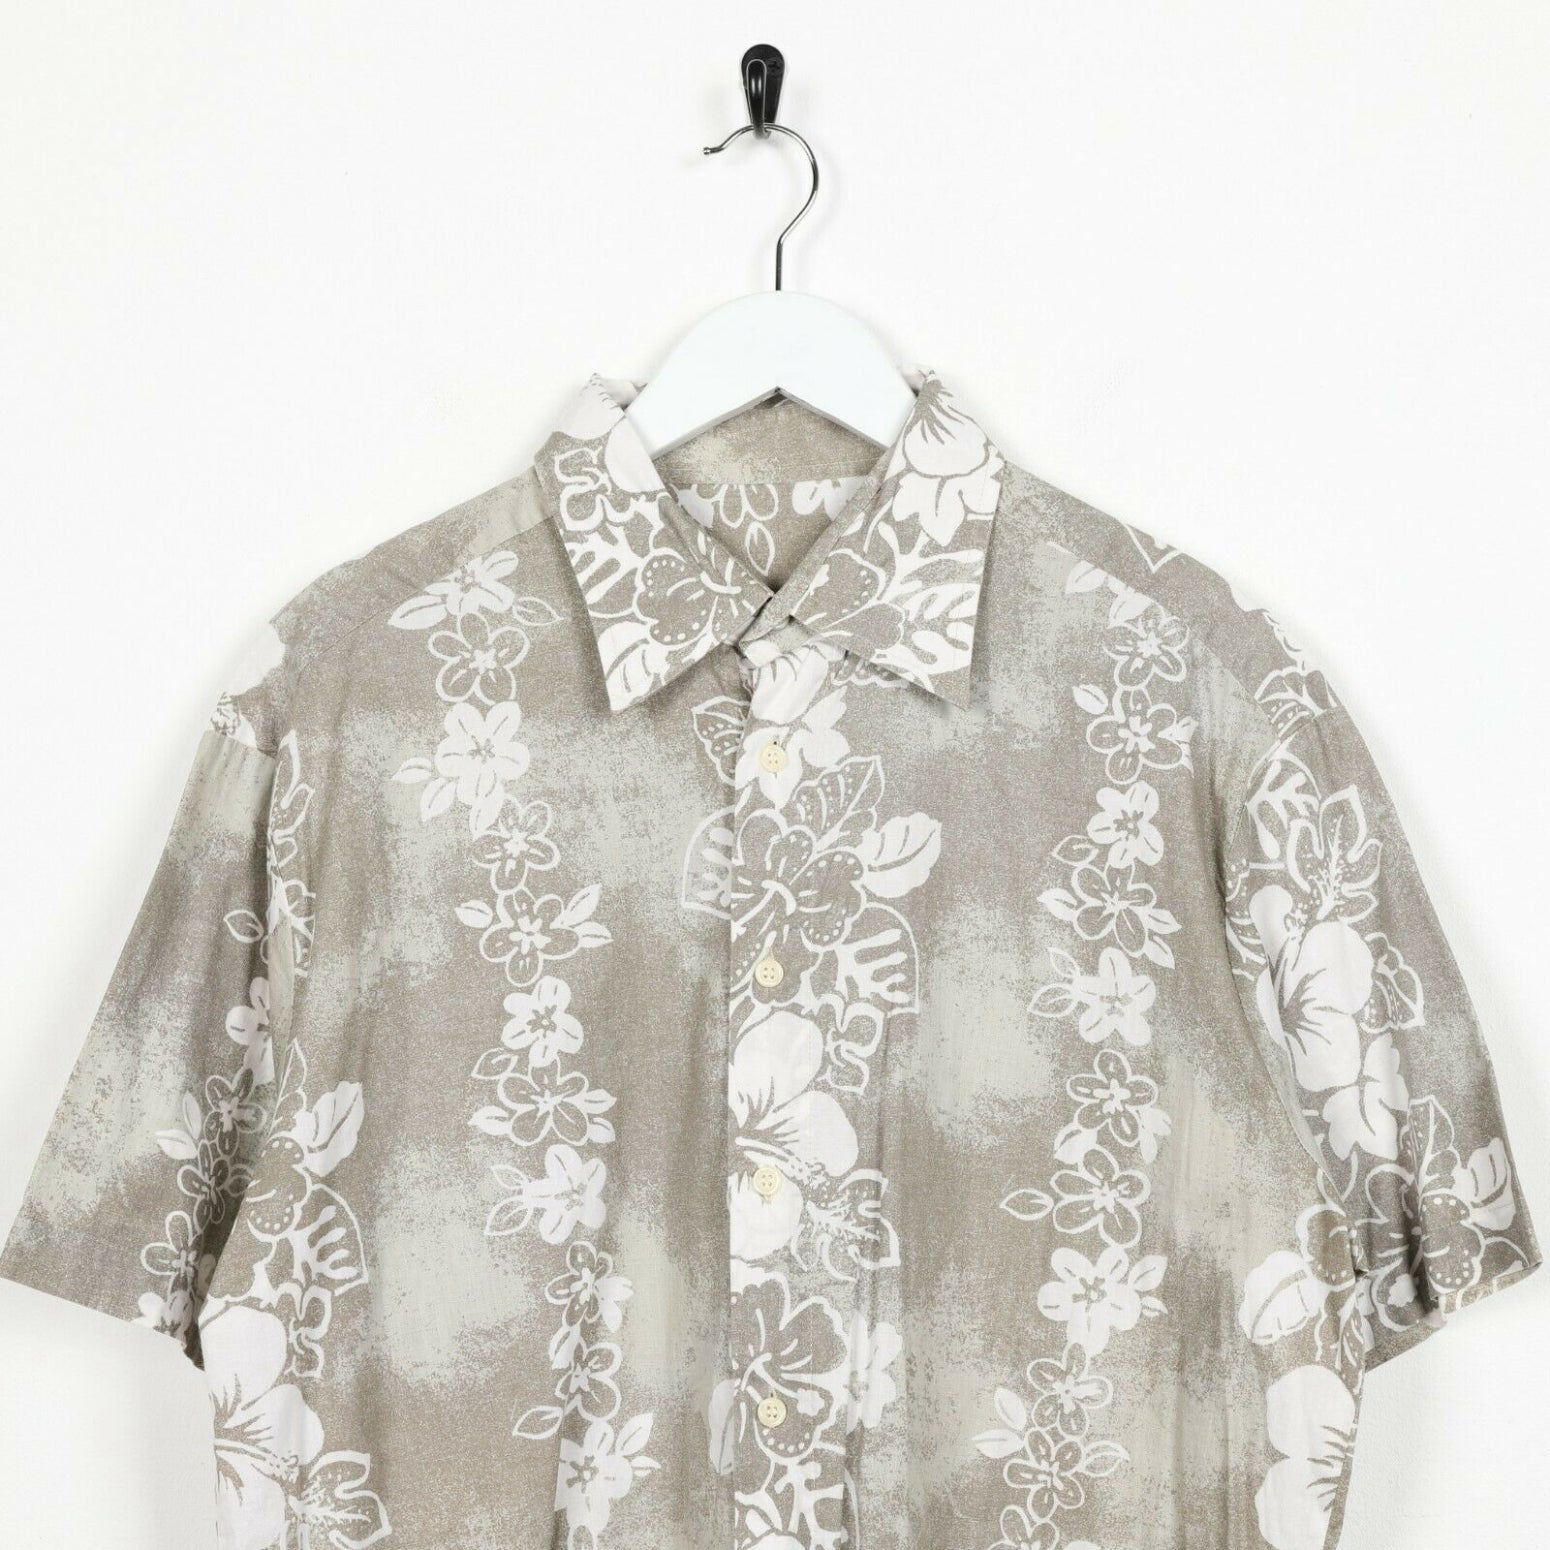 Vintage 90s ABSTRACT Short Sleeve Festival Shirt Grey Large L